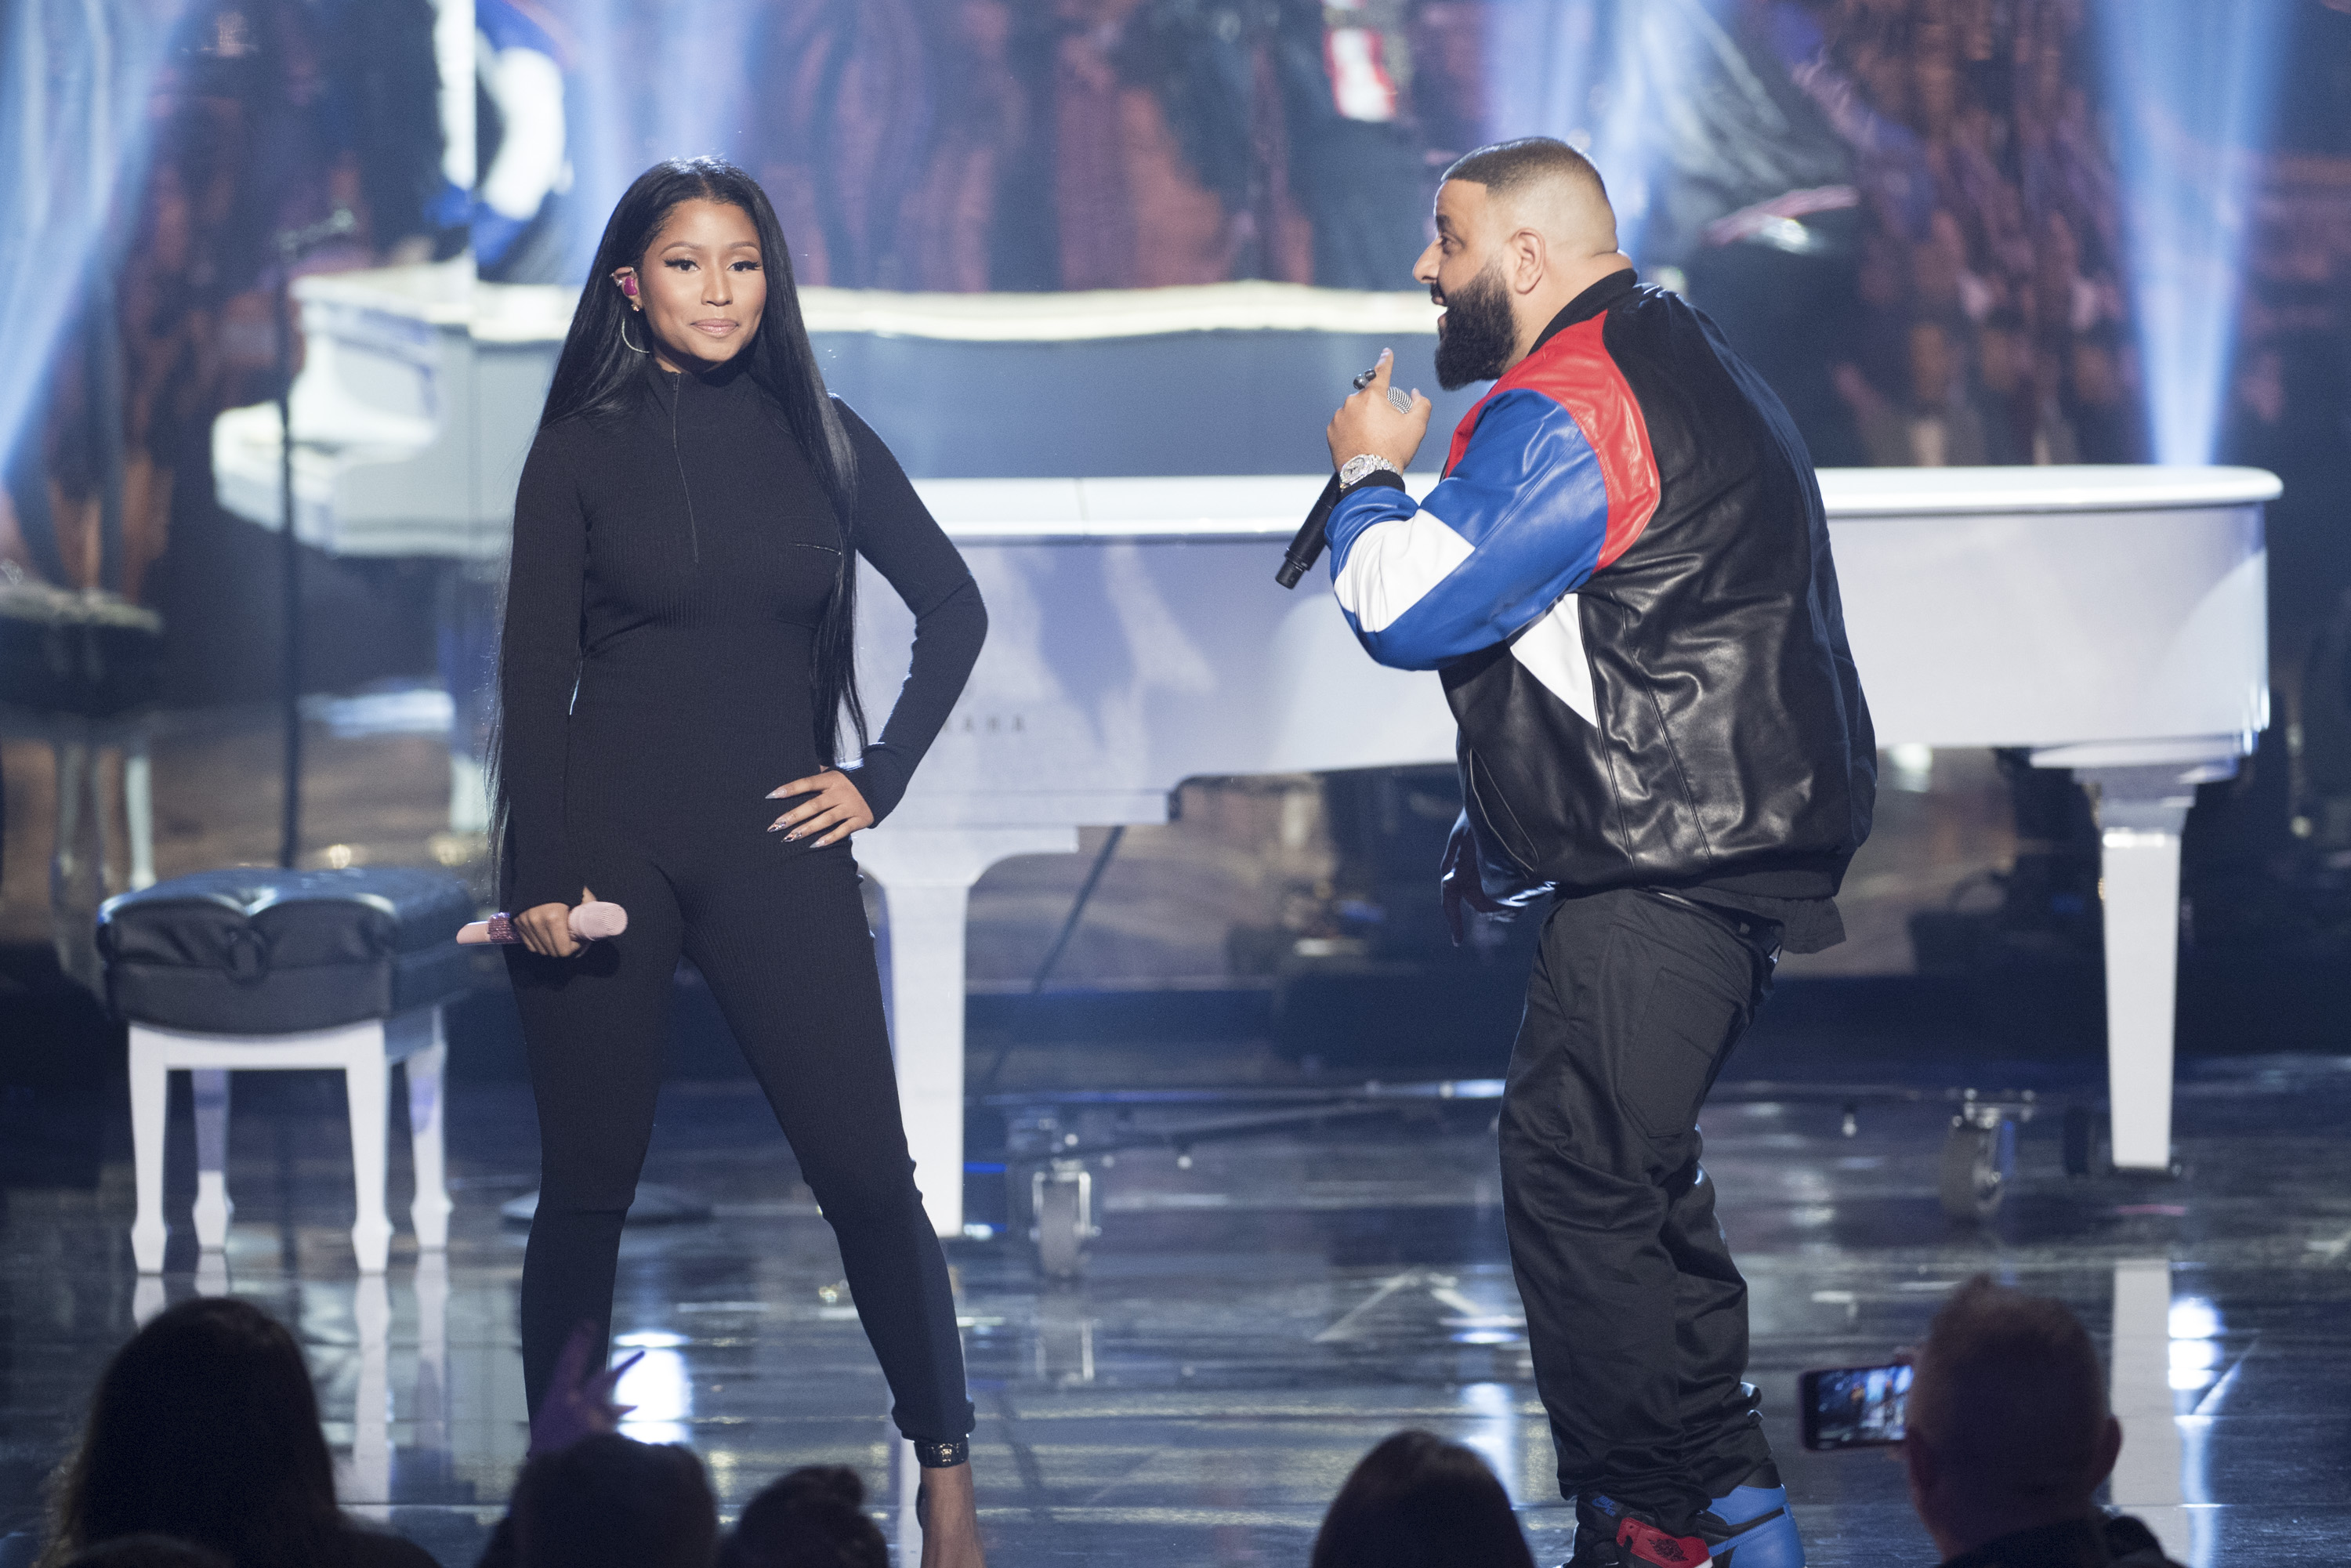 DJ Khaled's son met Nicki Minaj so he's already on his way to being just like his dad